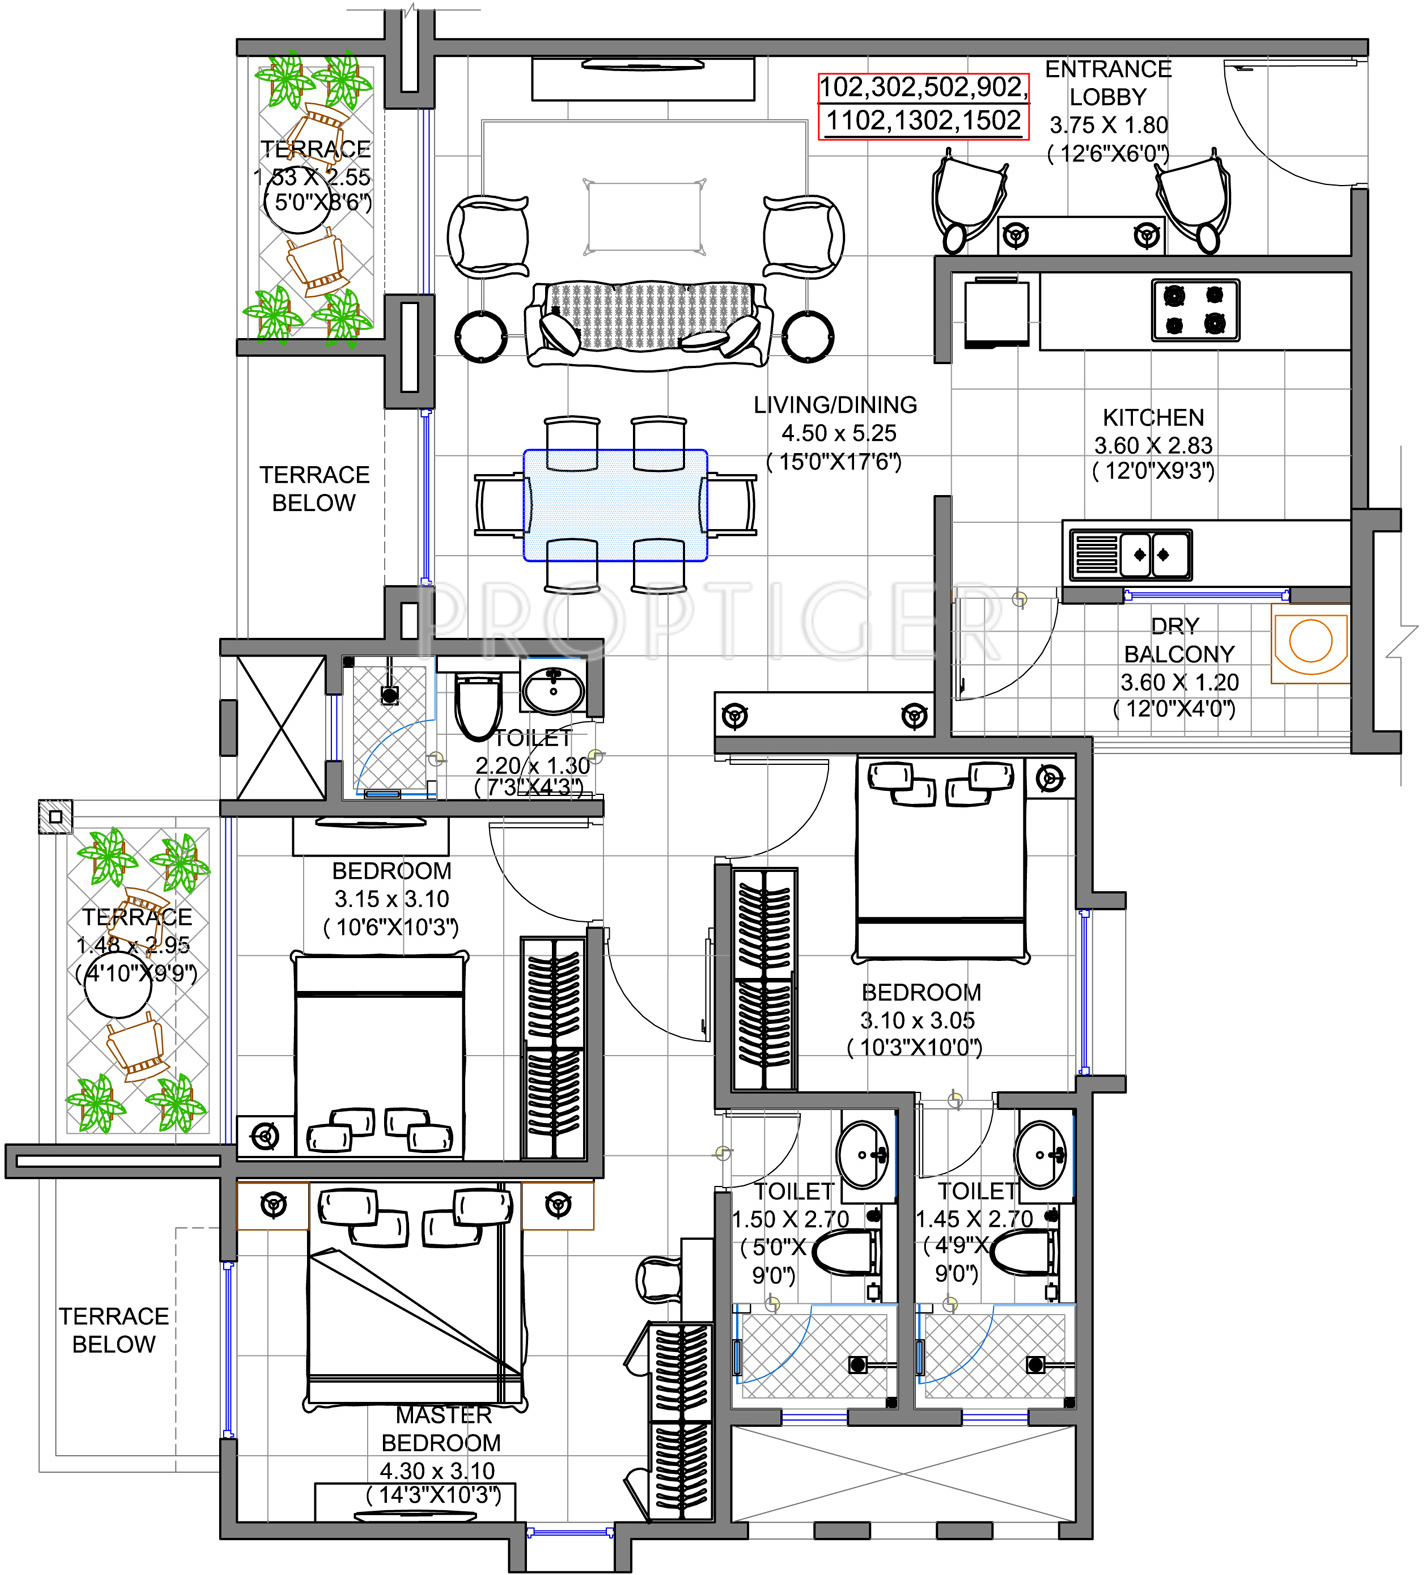 8000 square foot house plans pin 8000 square foot house for Floor plans 8000 square feet